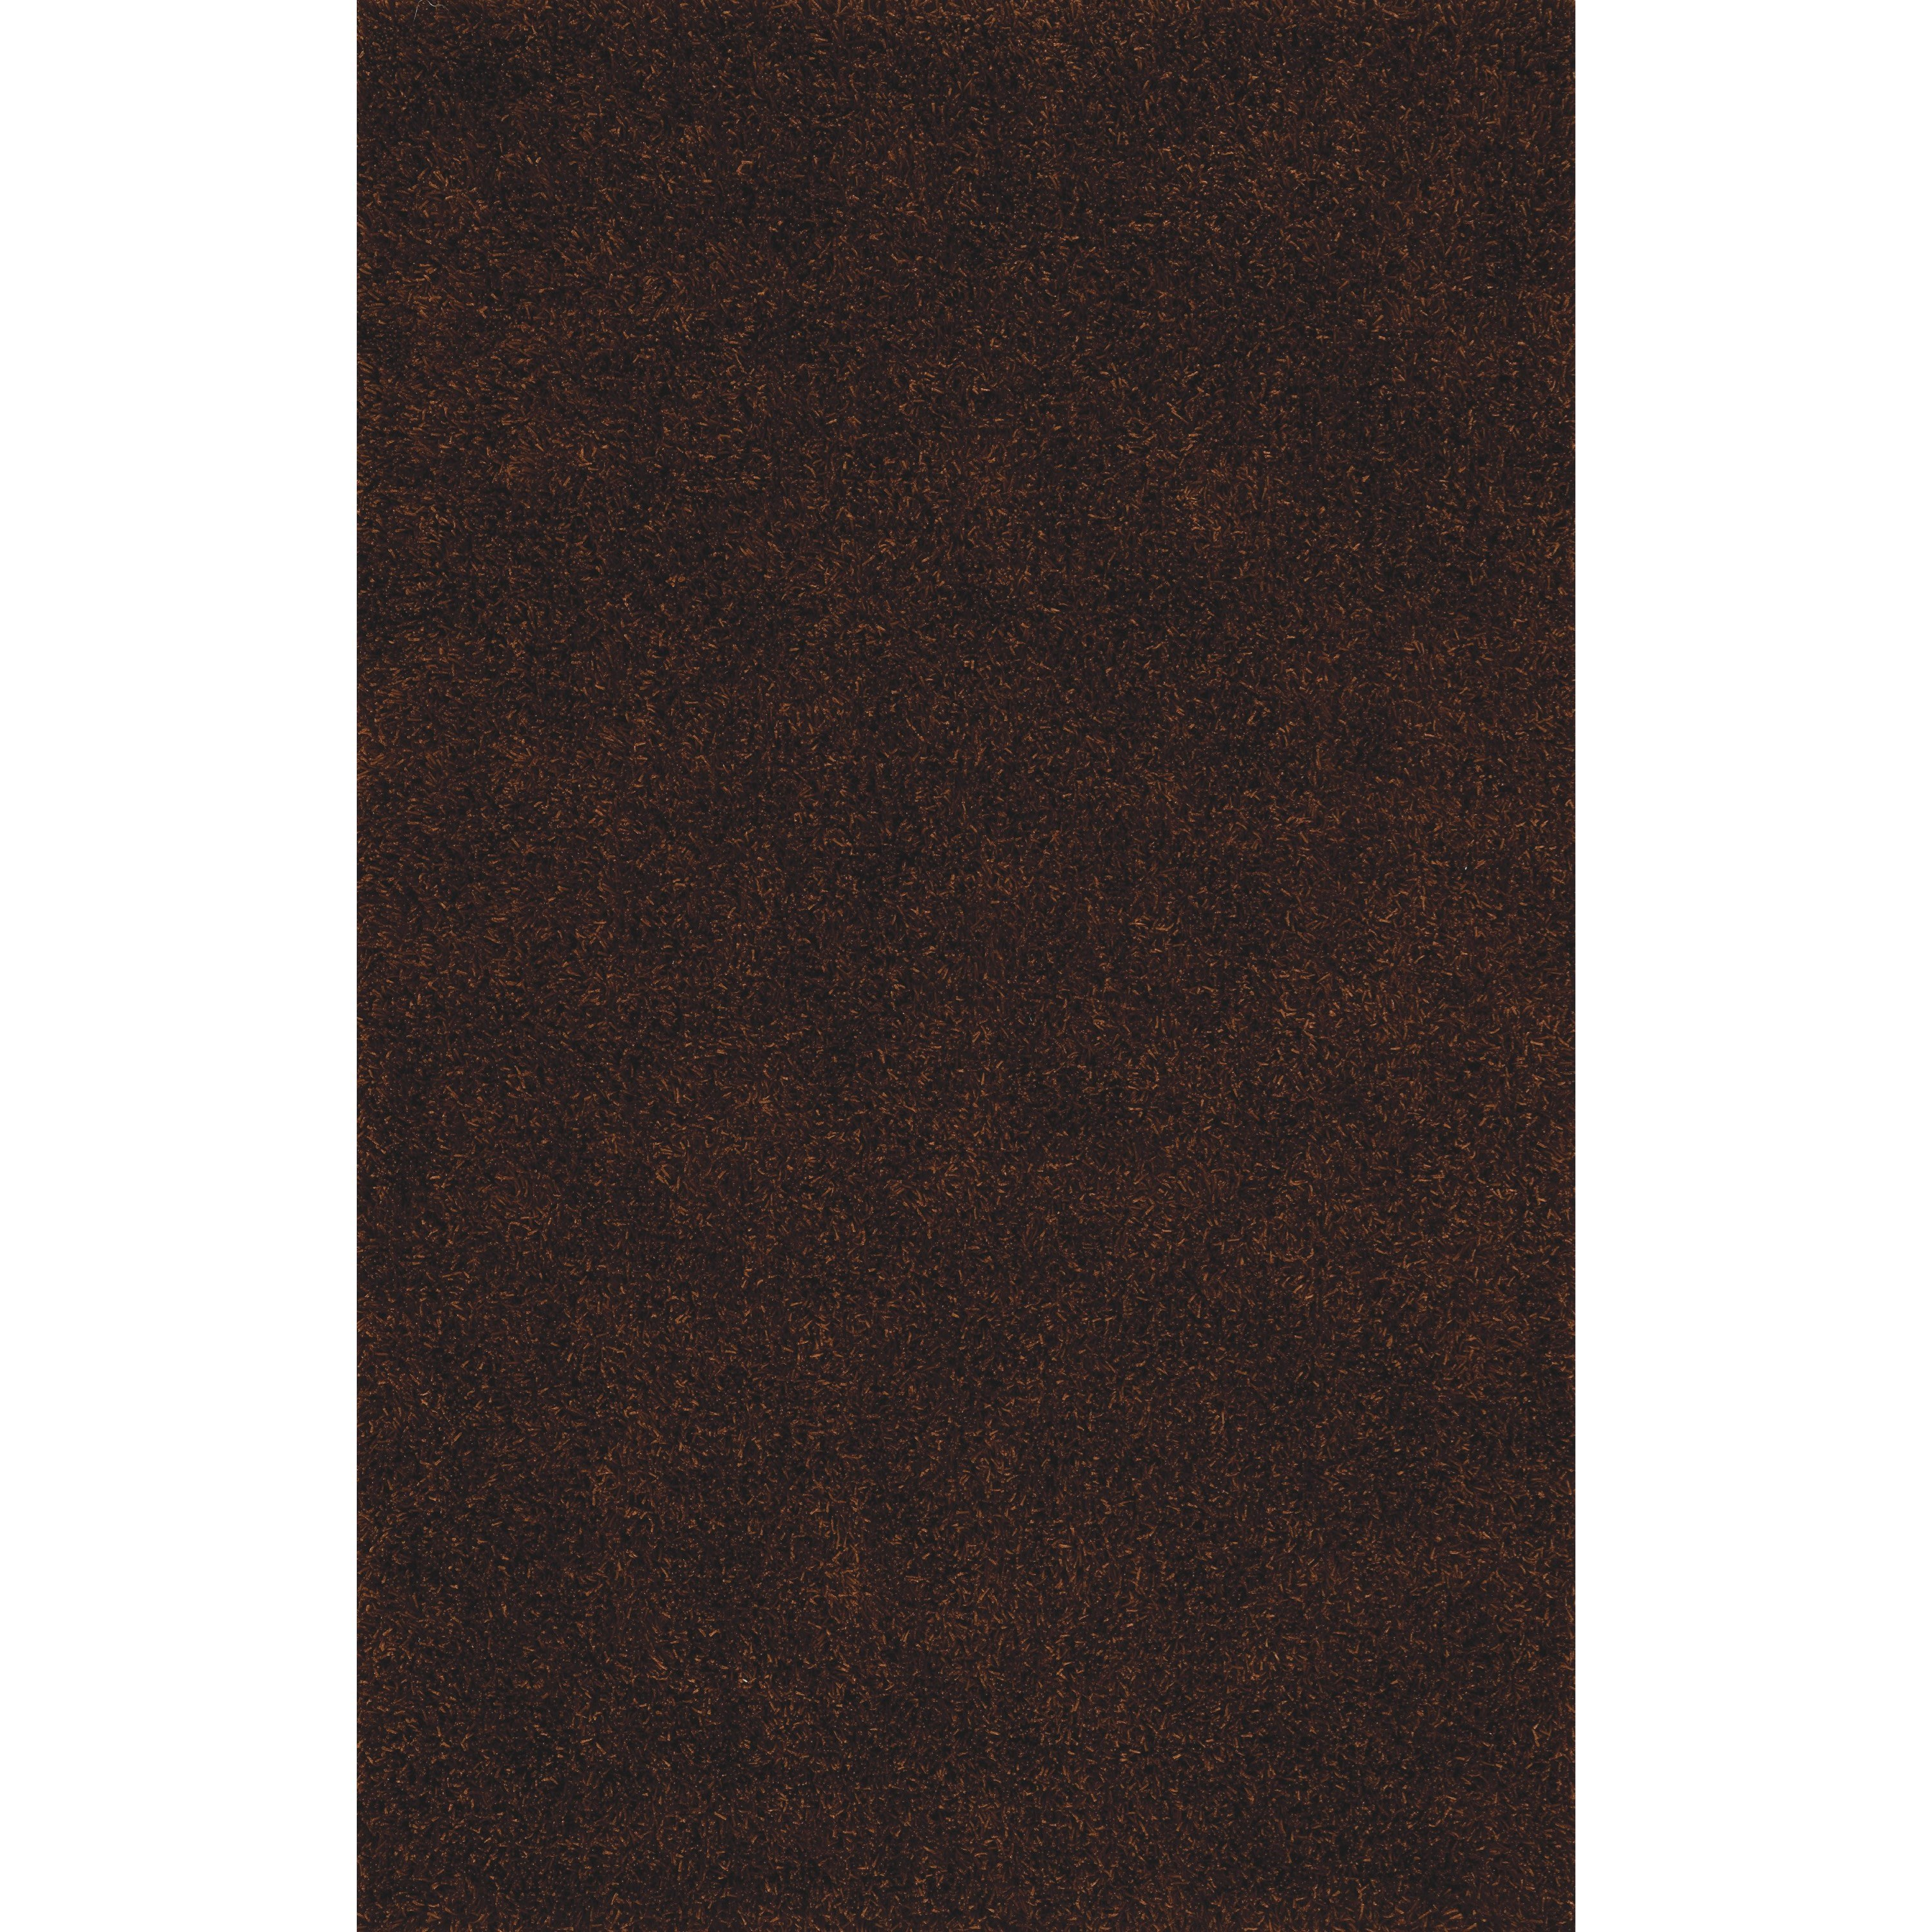 """Illusions Chocolate 5'X7'6"""" Rug by Dalyn at Sadler's Home Furnishings"""